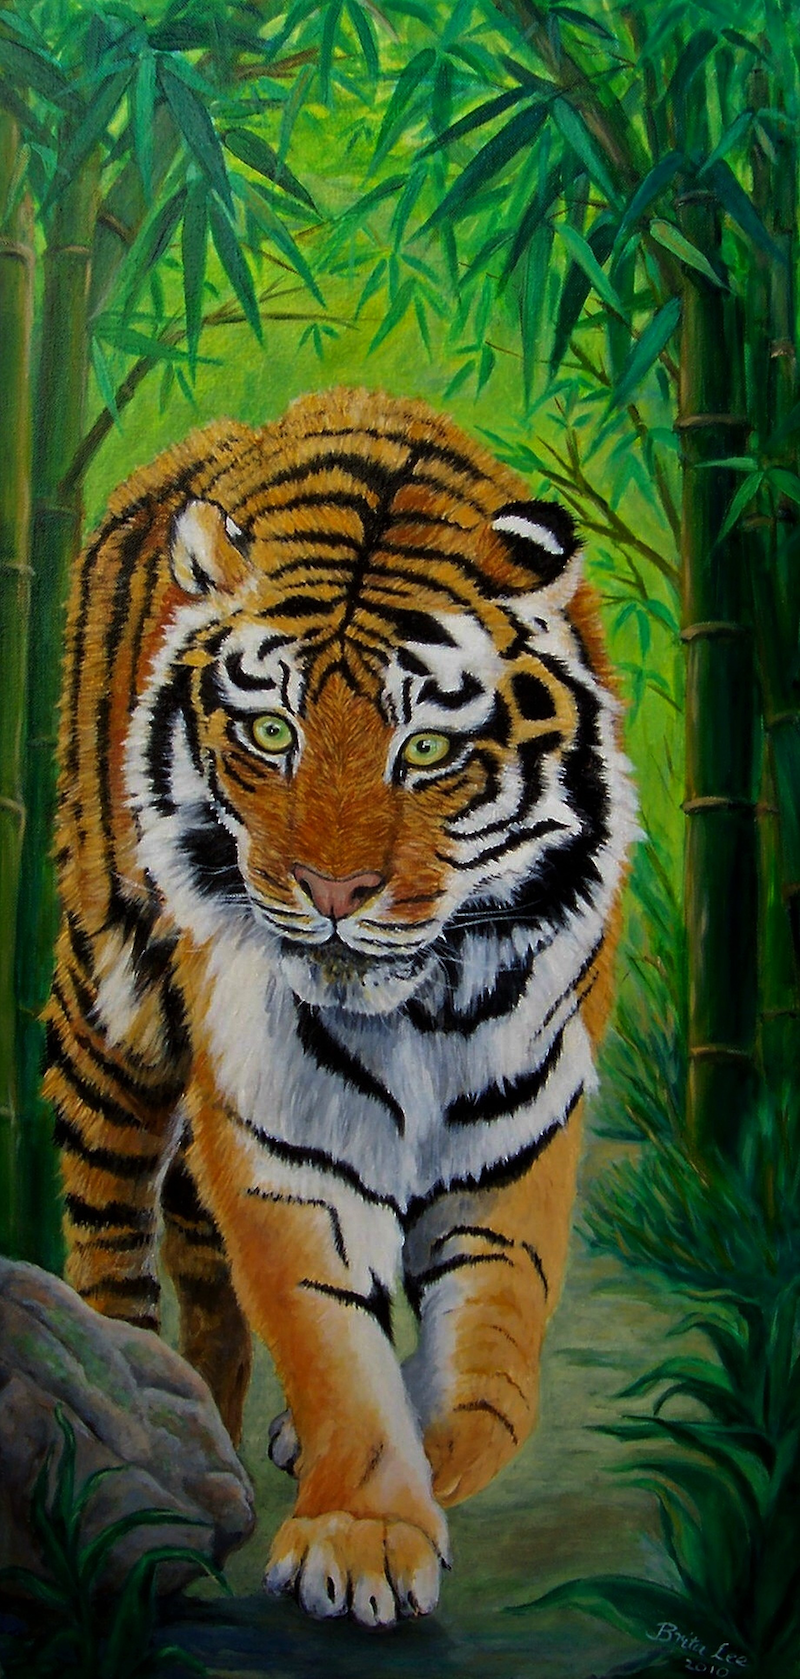 Tiger In Bamboo Forest By Brita Lee